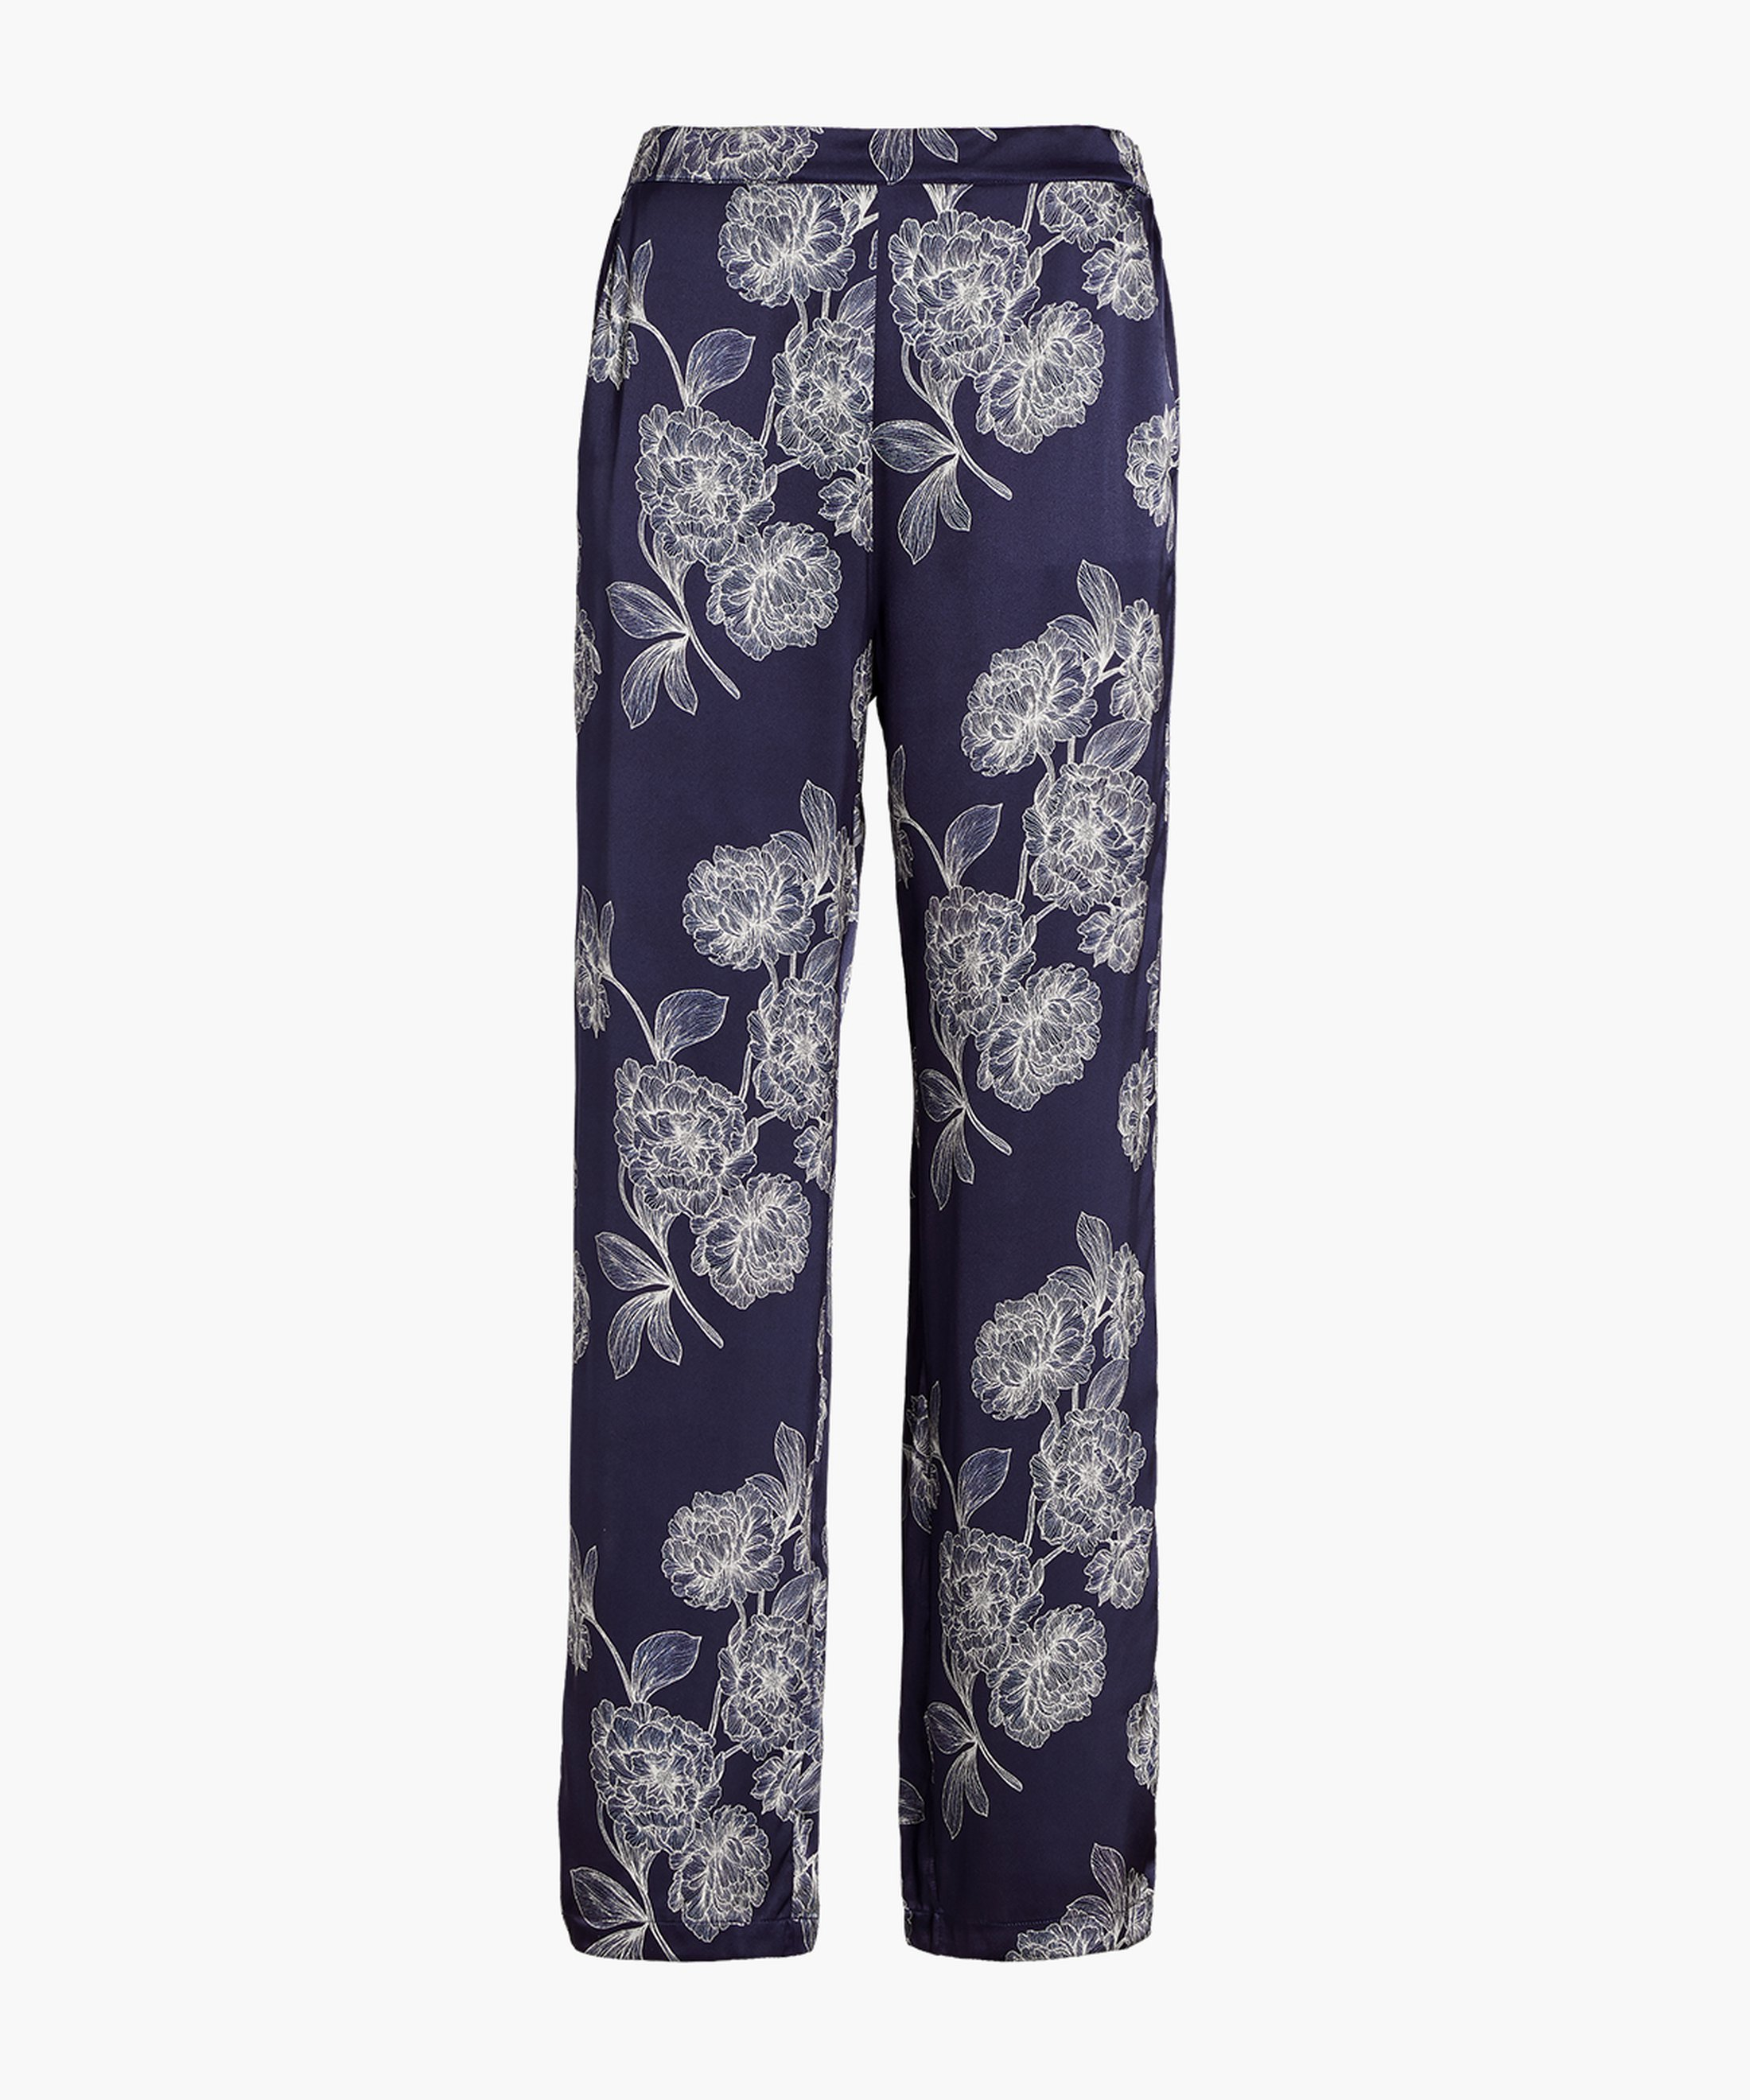 TOI MON AMOUR Silk Pants Night Blue | Aubade